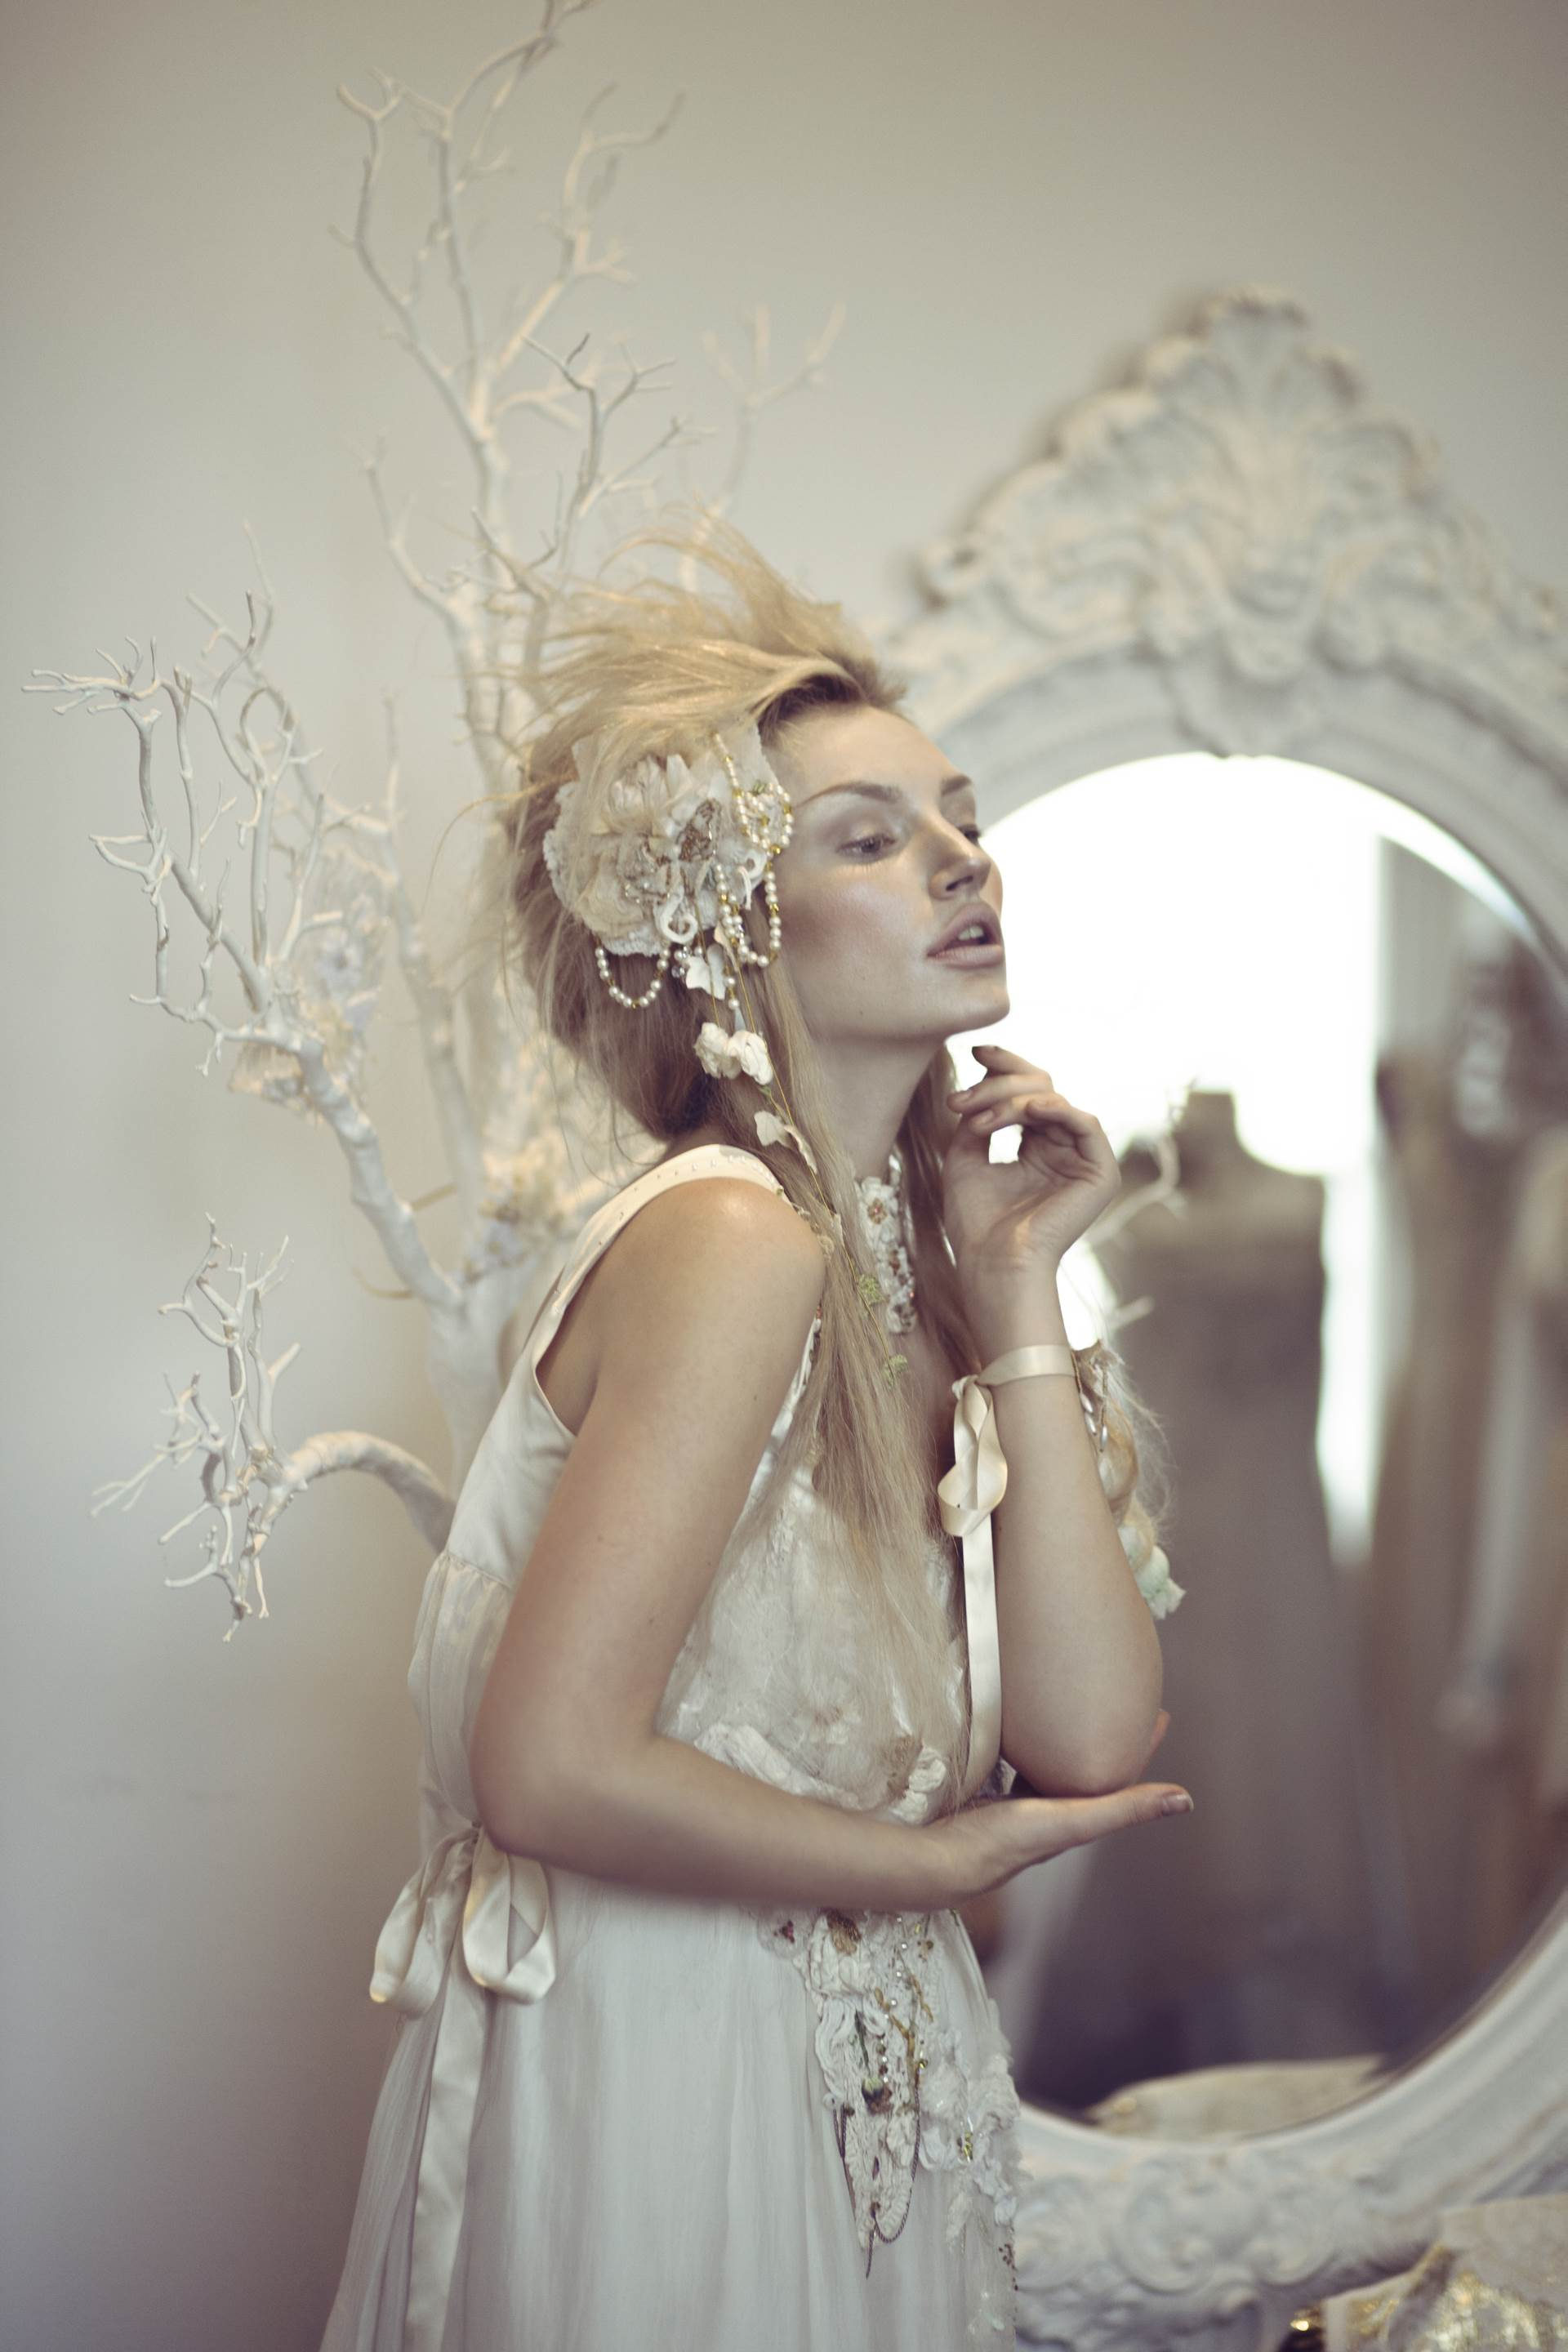 Alternative Wedding Inspiration: The Snow Queen Bride